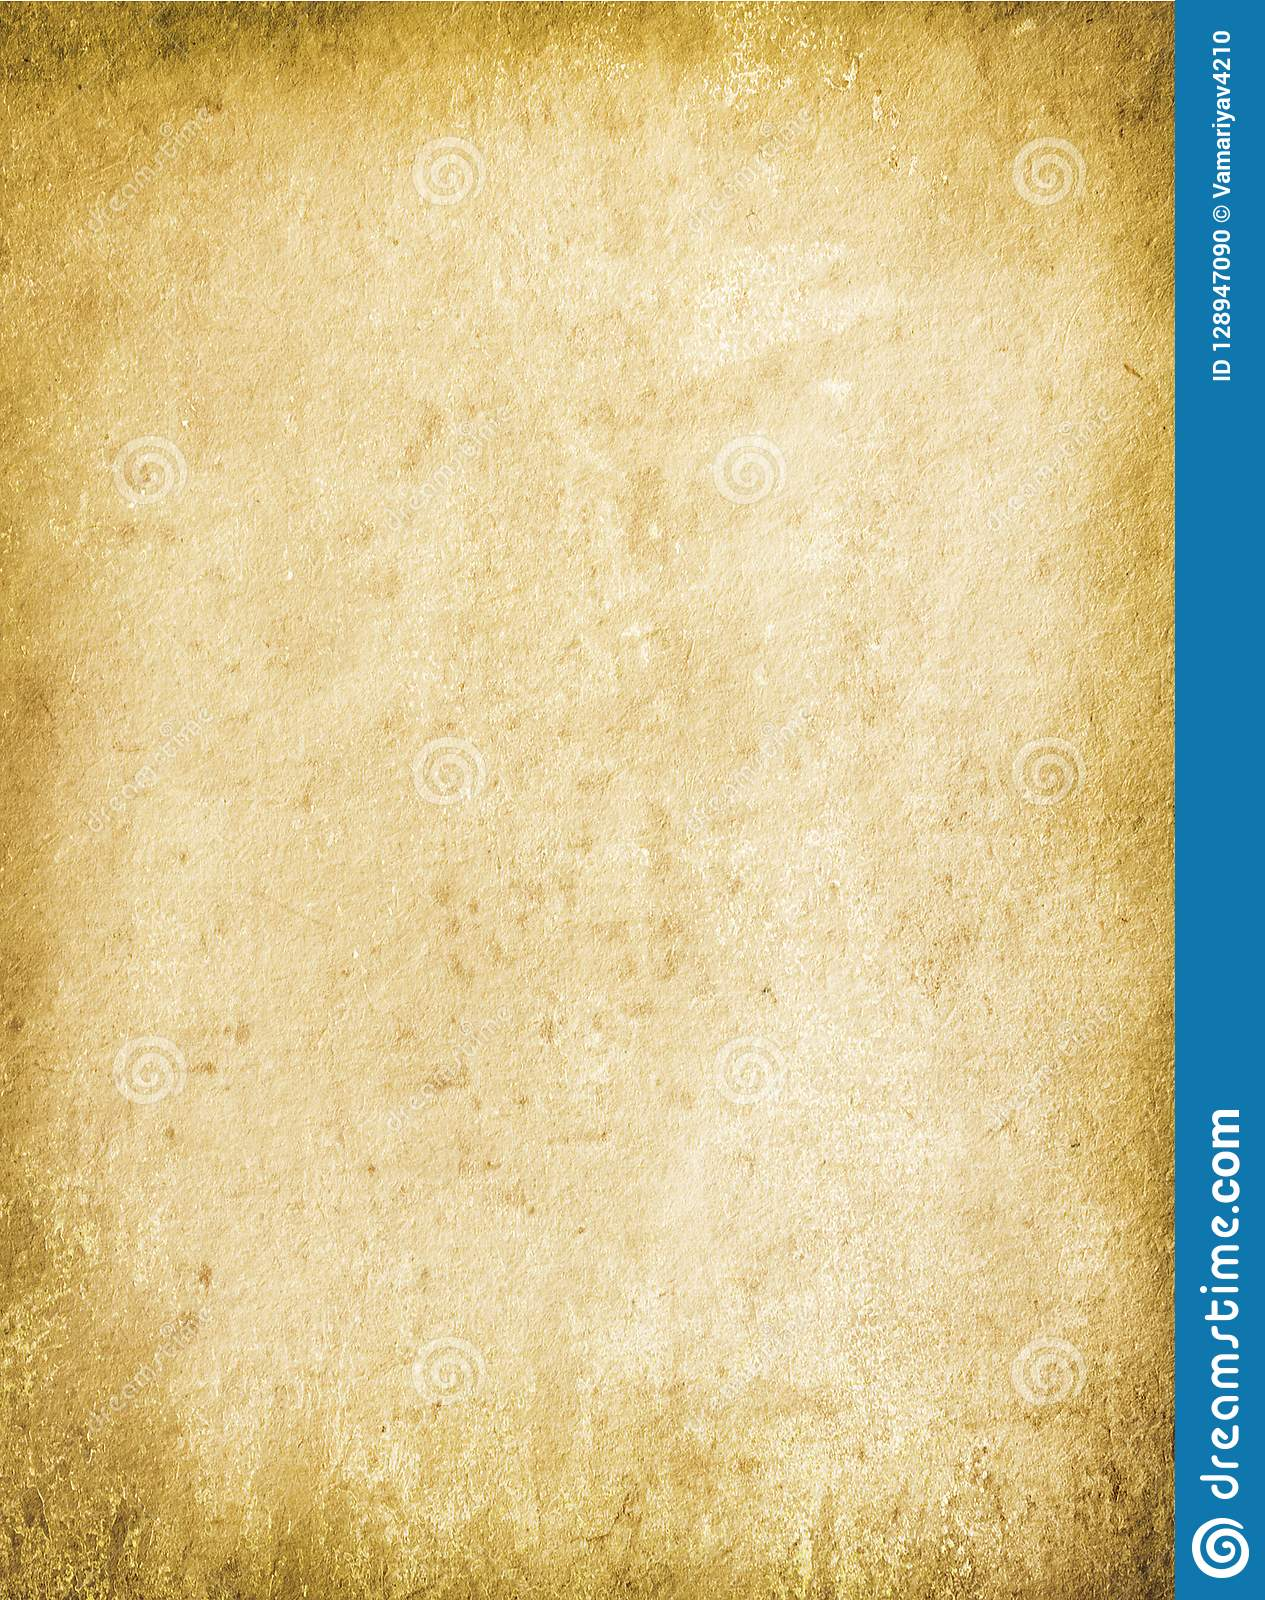 Grunge Background Brown, Old Paper Texture, Stains, Blank